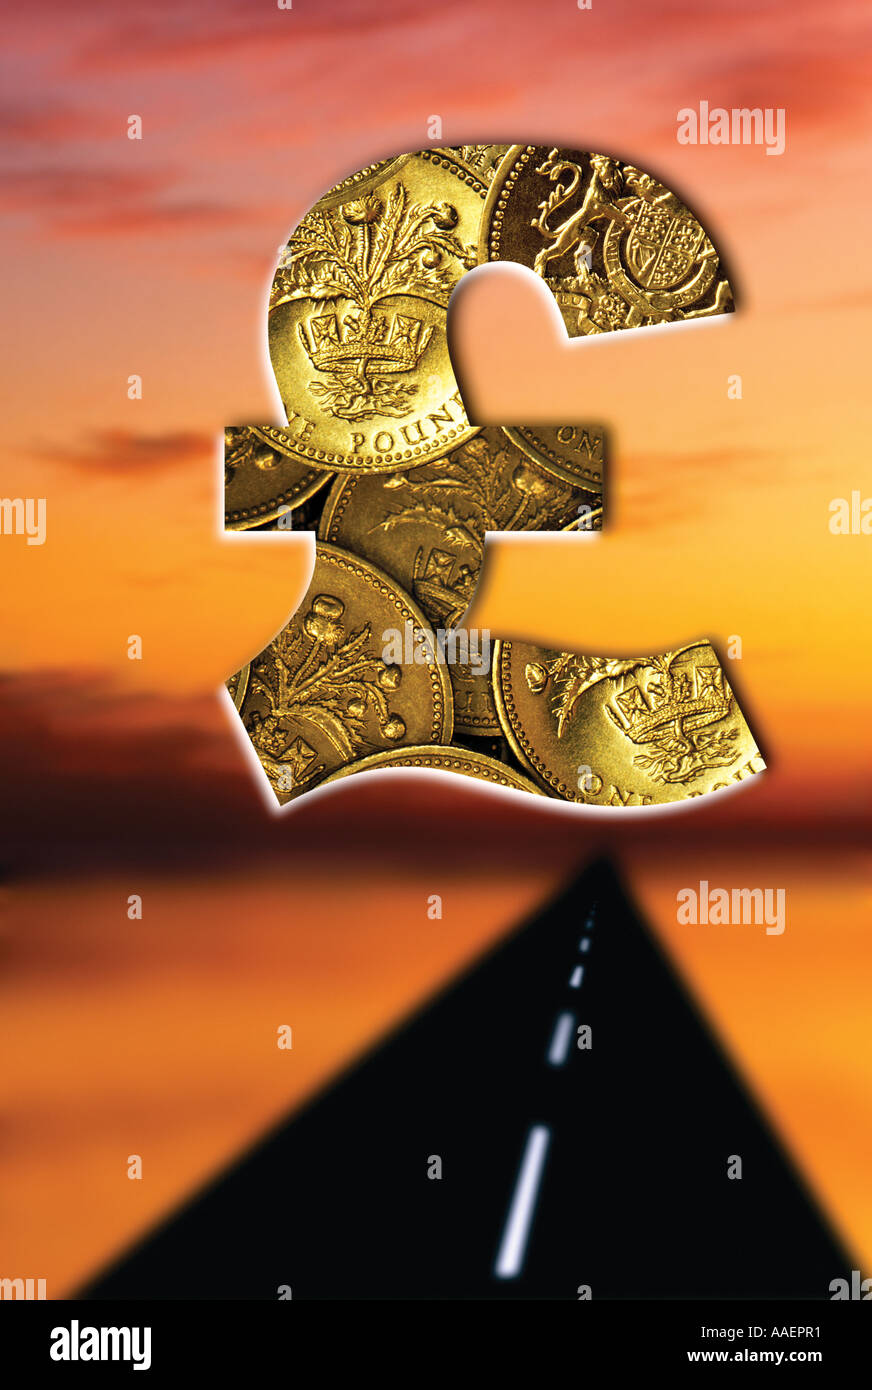 Pound coin sign Road to riches - Stock Image